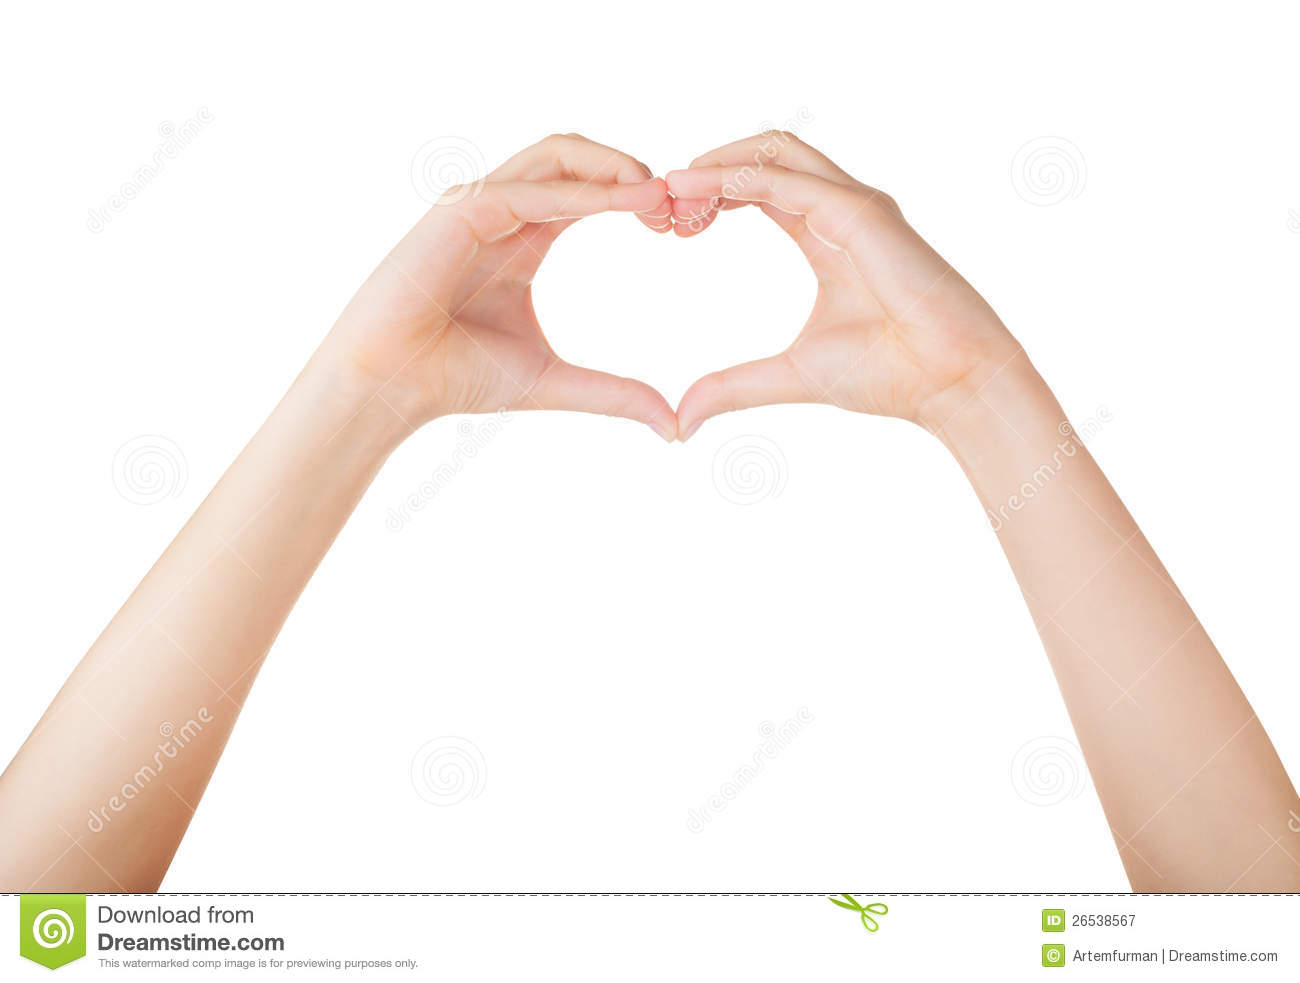 Human Hand Heart Royalty Free Stock Photography - Image: 26538567